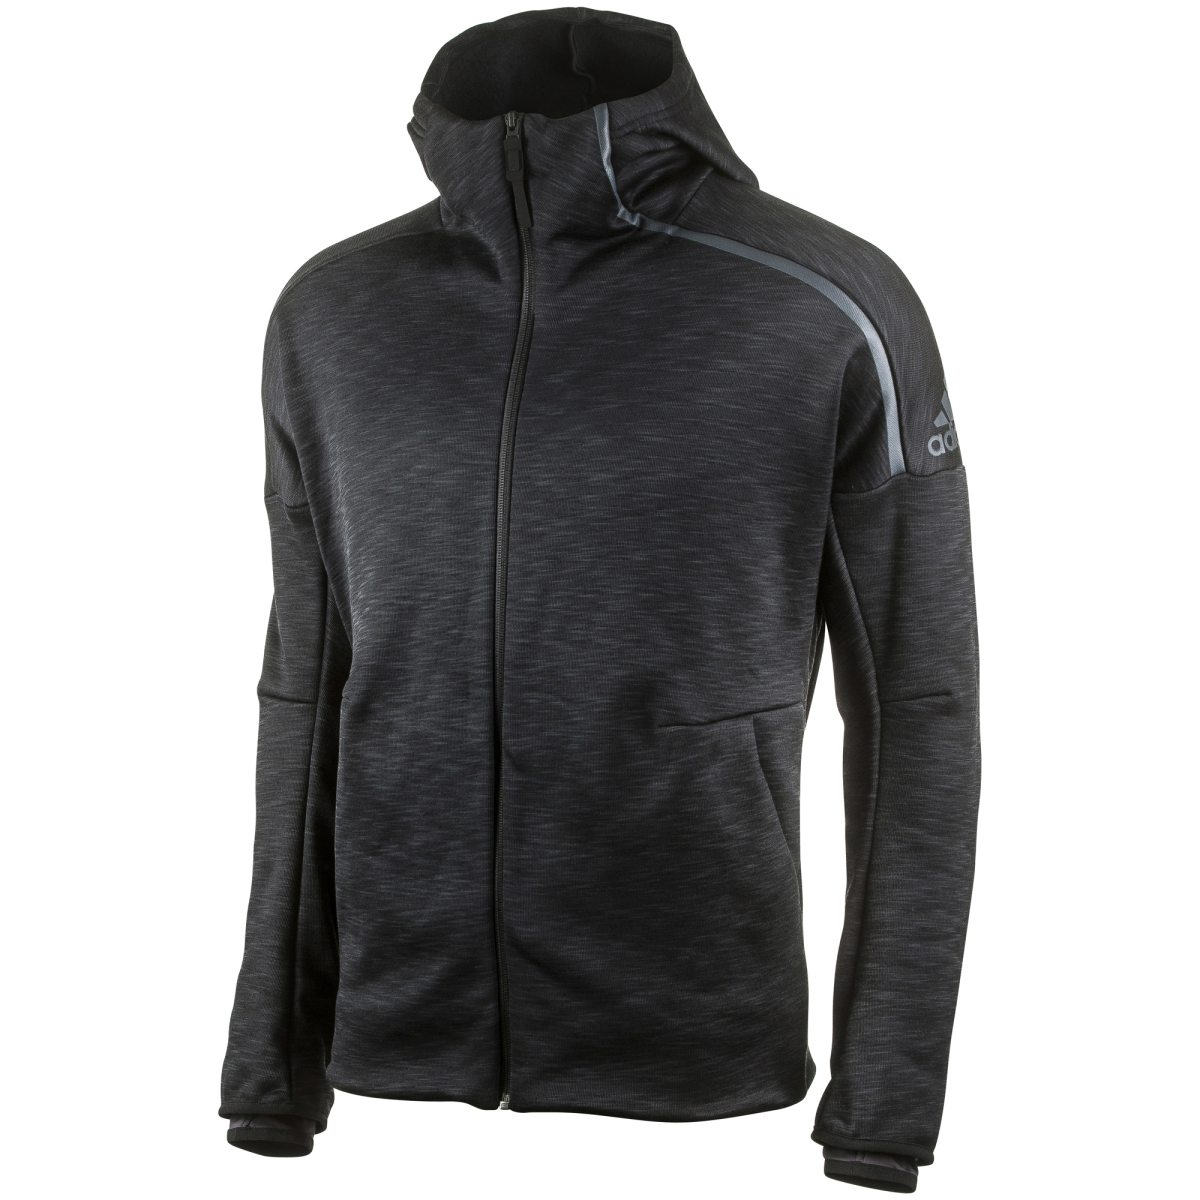 1592b56e Find every shop in the world selling adidas hettejakke at PricePi.com